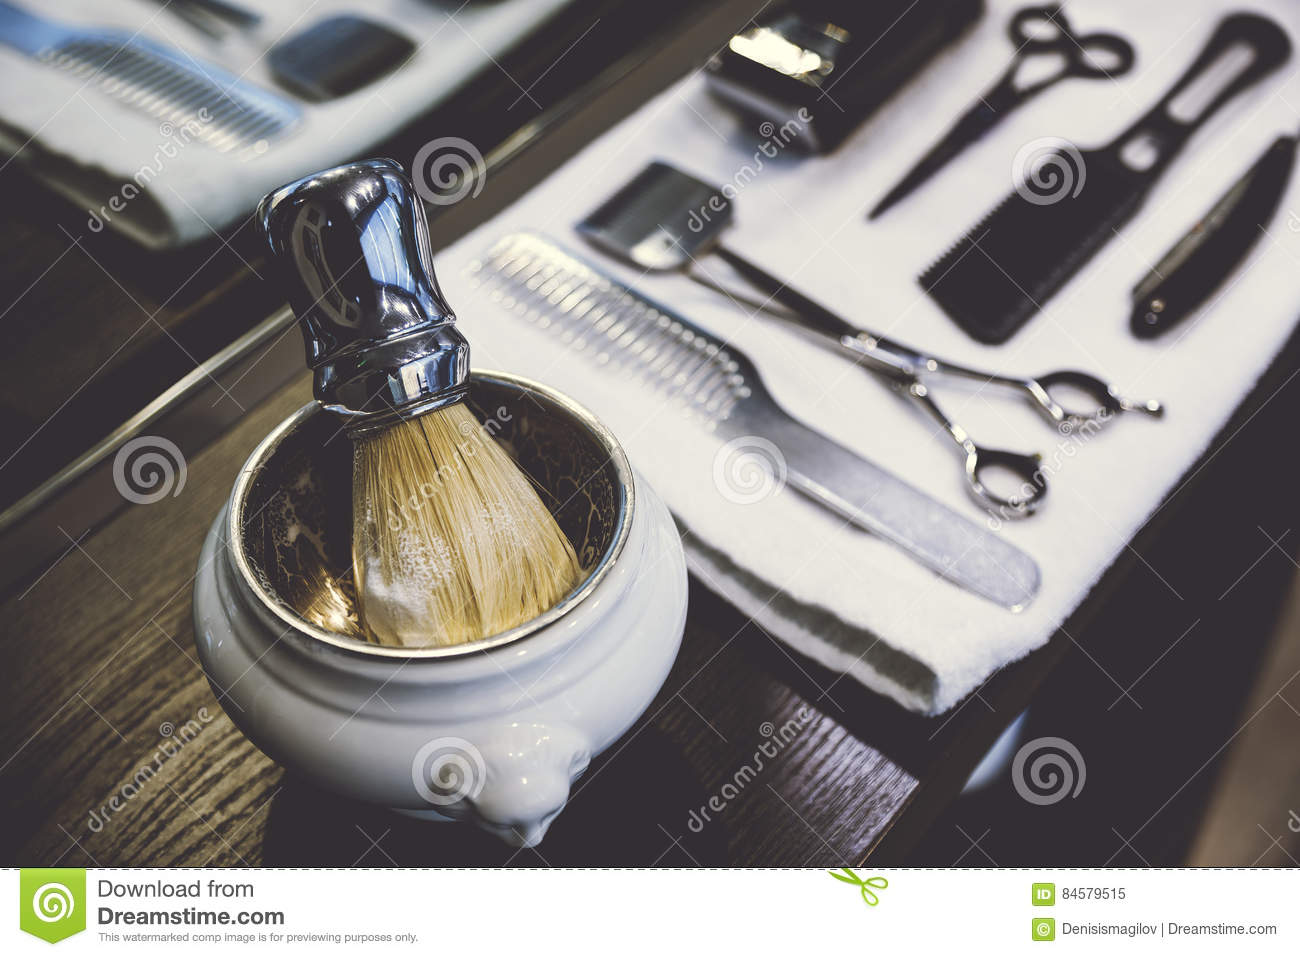 Side view of a shaving kit